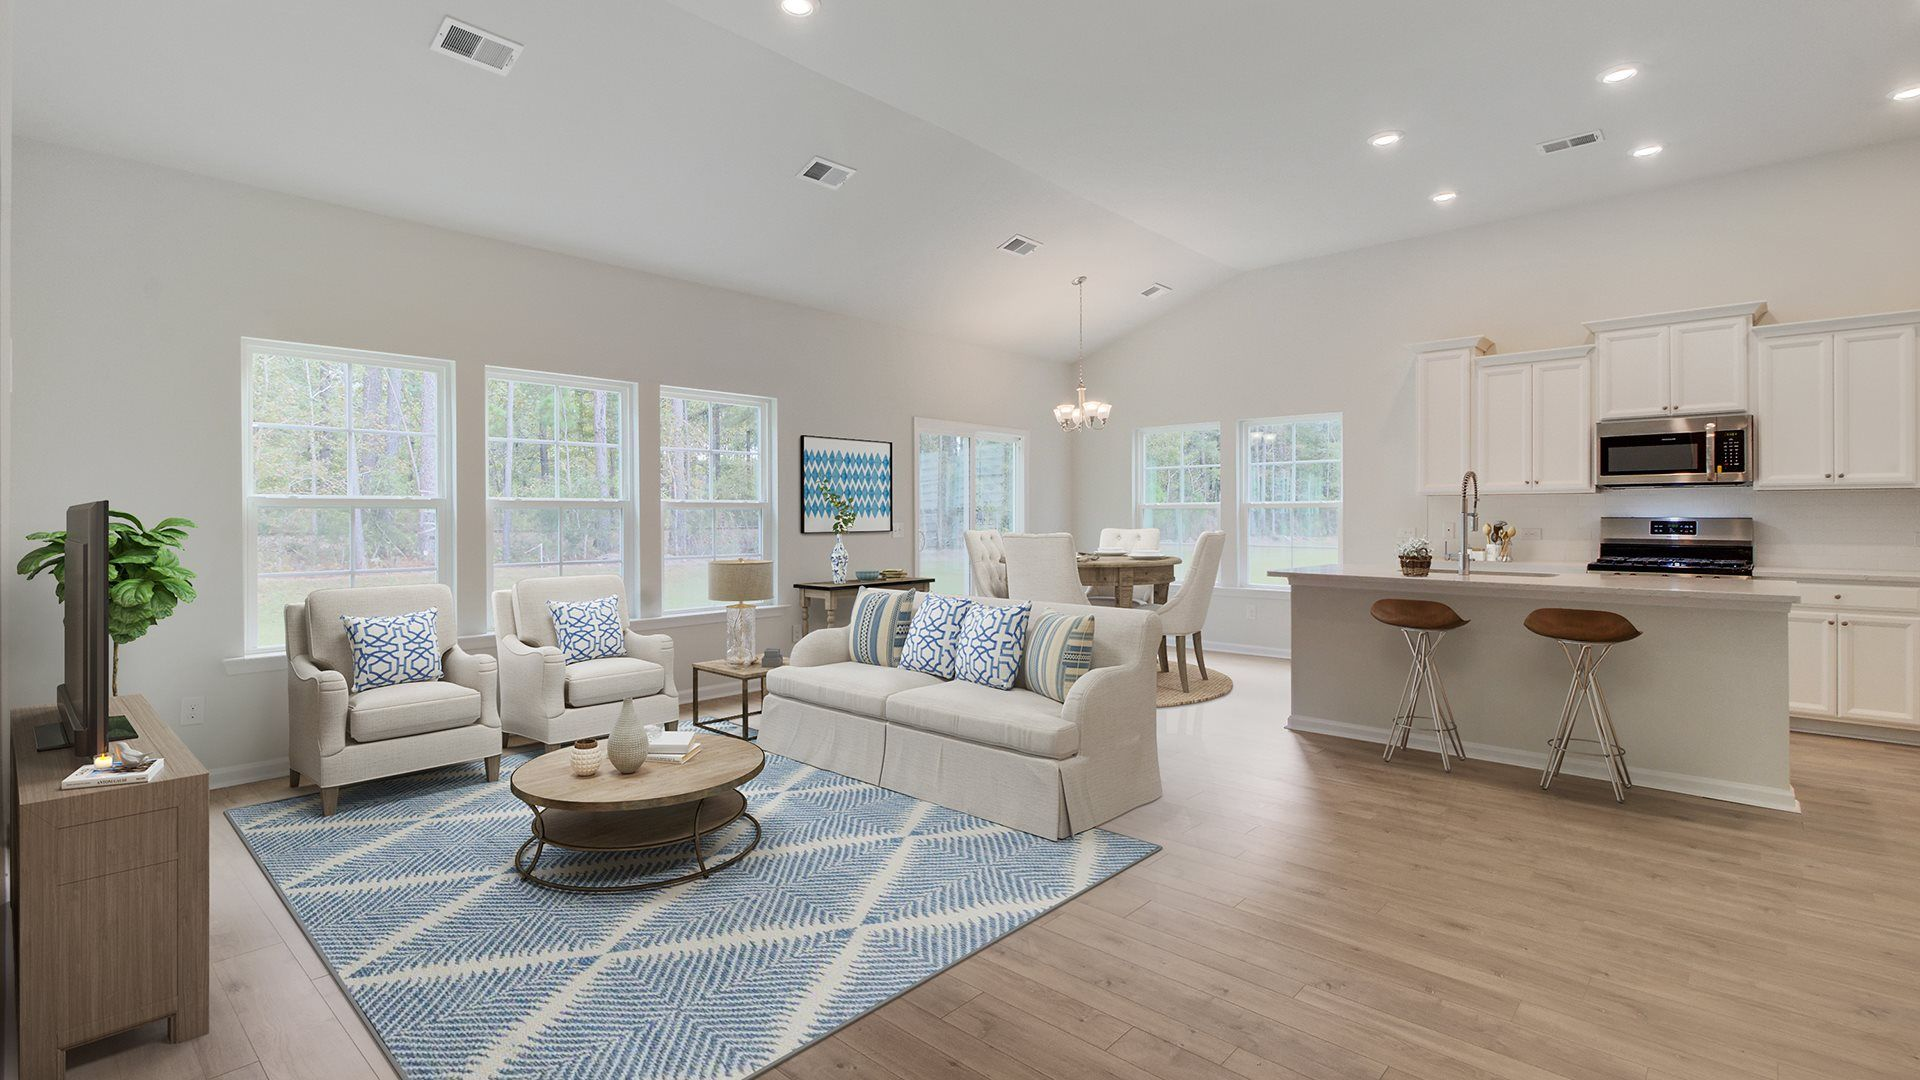 Living Area featured in the BELHAVEN II By Lennar in Myrtle Beach, SC